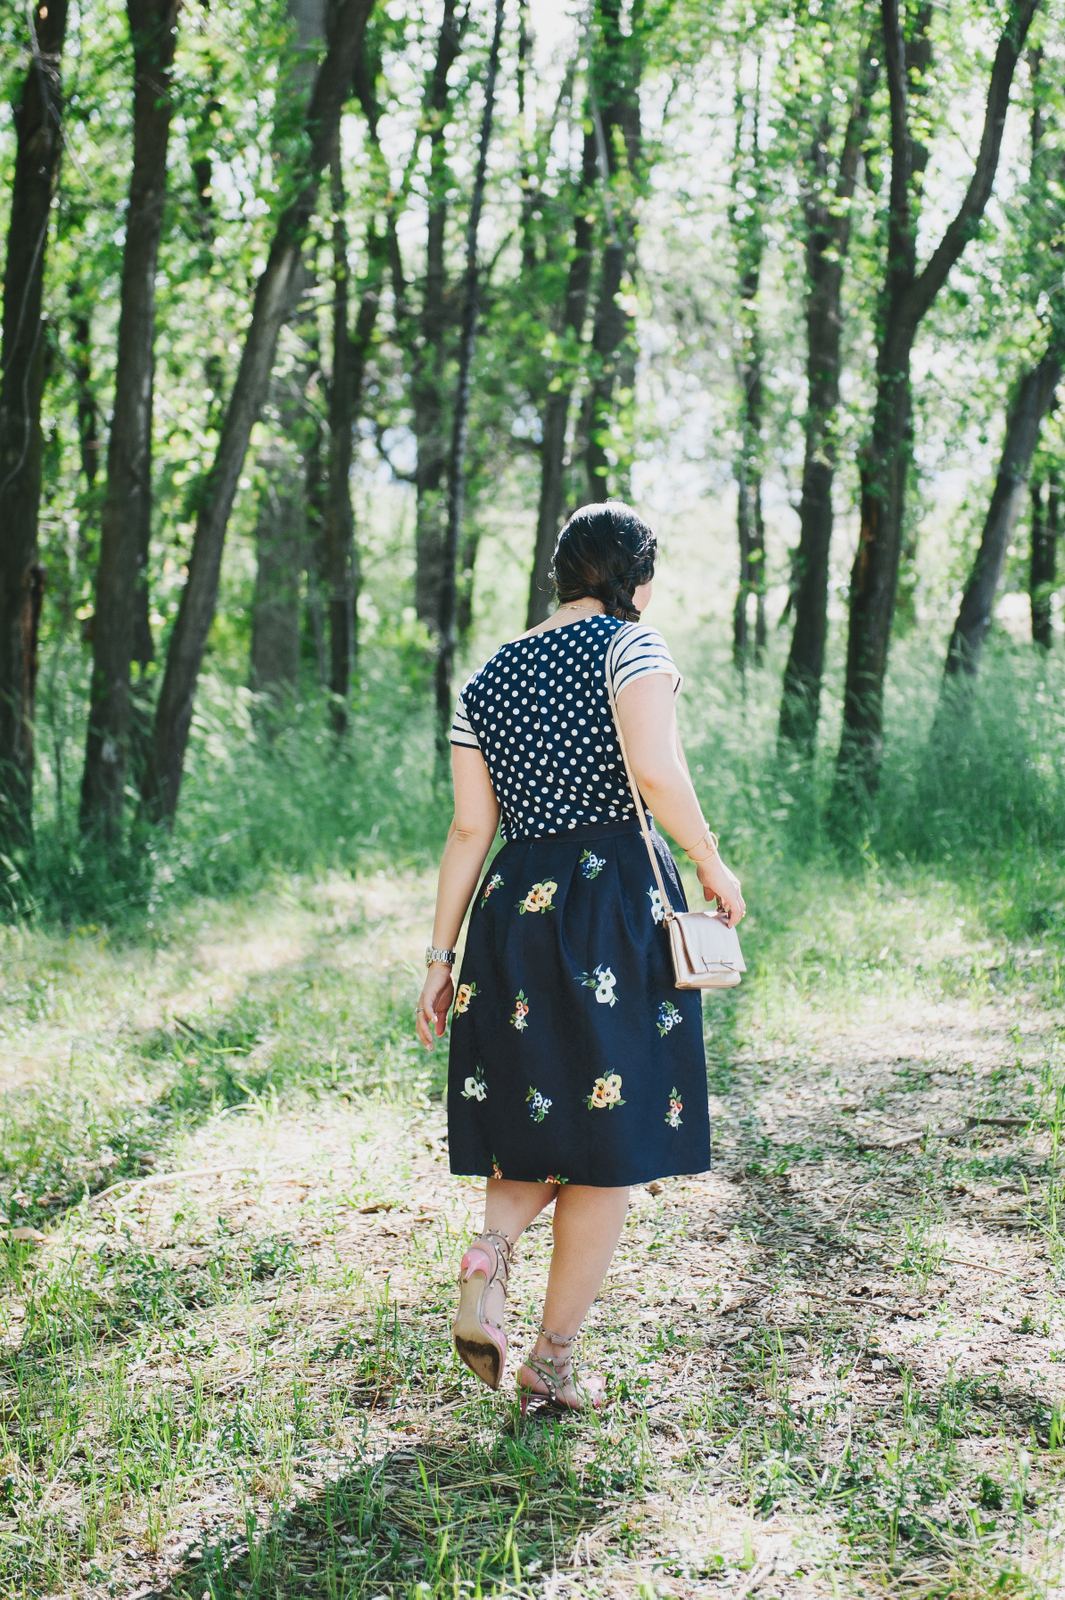 Sandy a la Mode | Fashion Blogger Pattern Mixing with Stripes Florals and Polka Dots